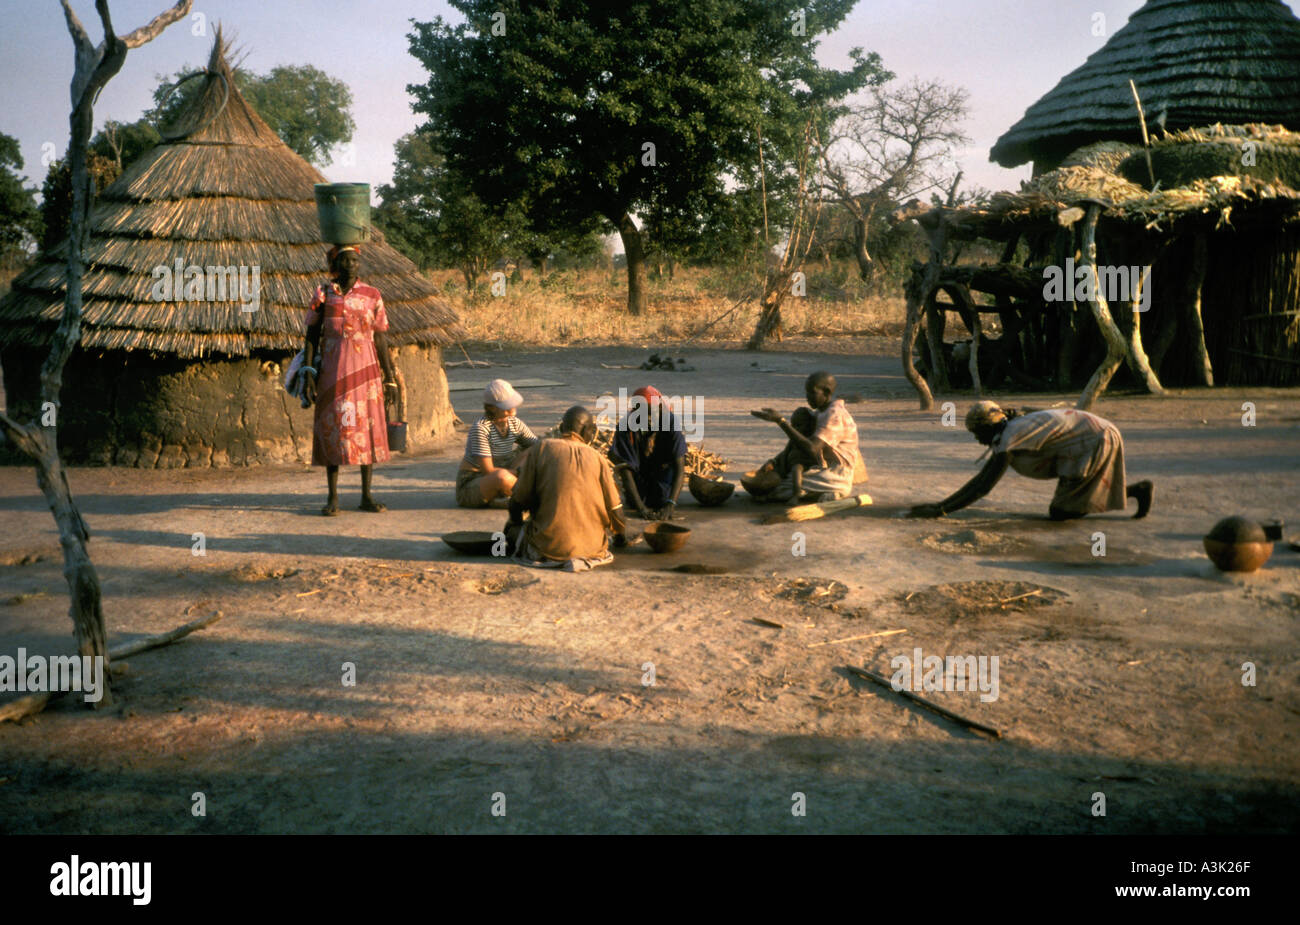 Tribeswomen in traditional rural village of Southern Sudan, Africa 2004 - Stock Image